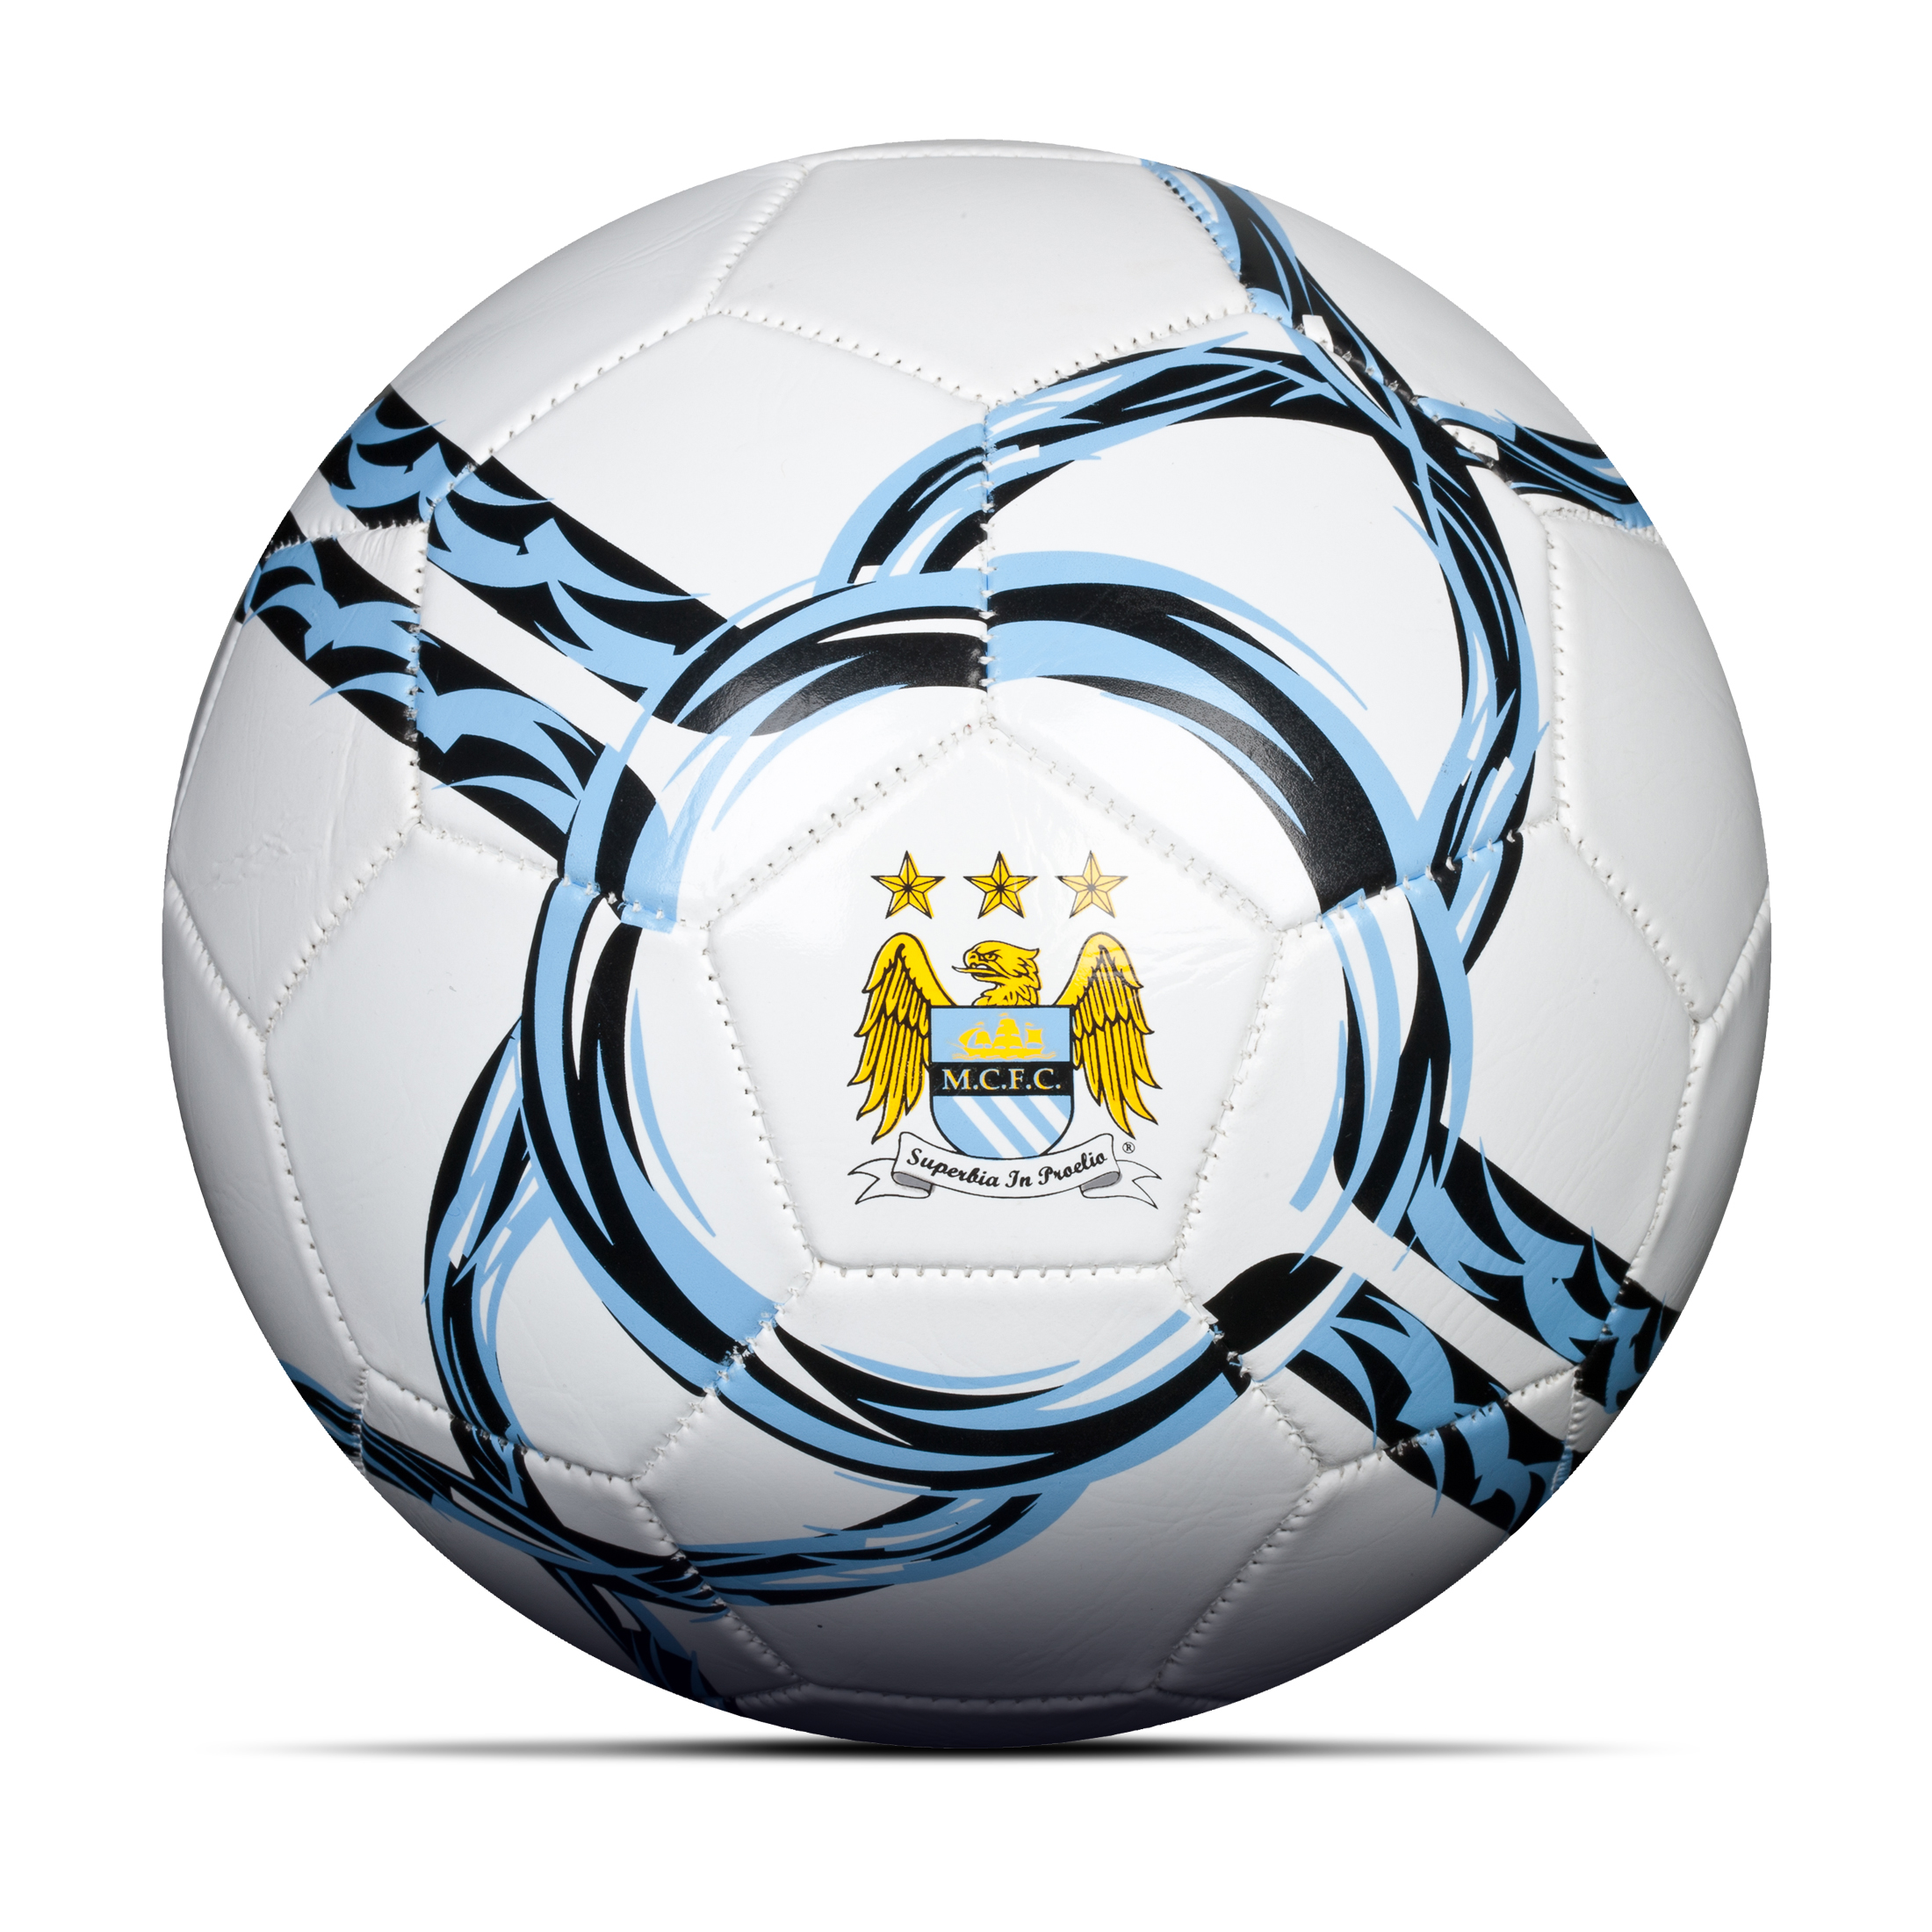 Manchester City Core Football - Size 5 - White